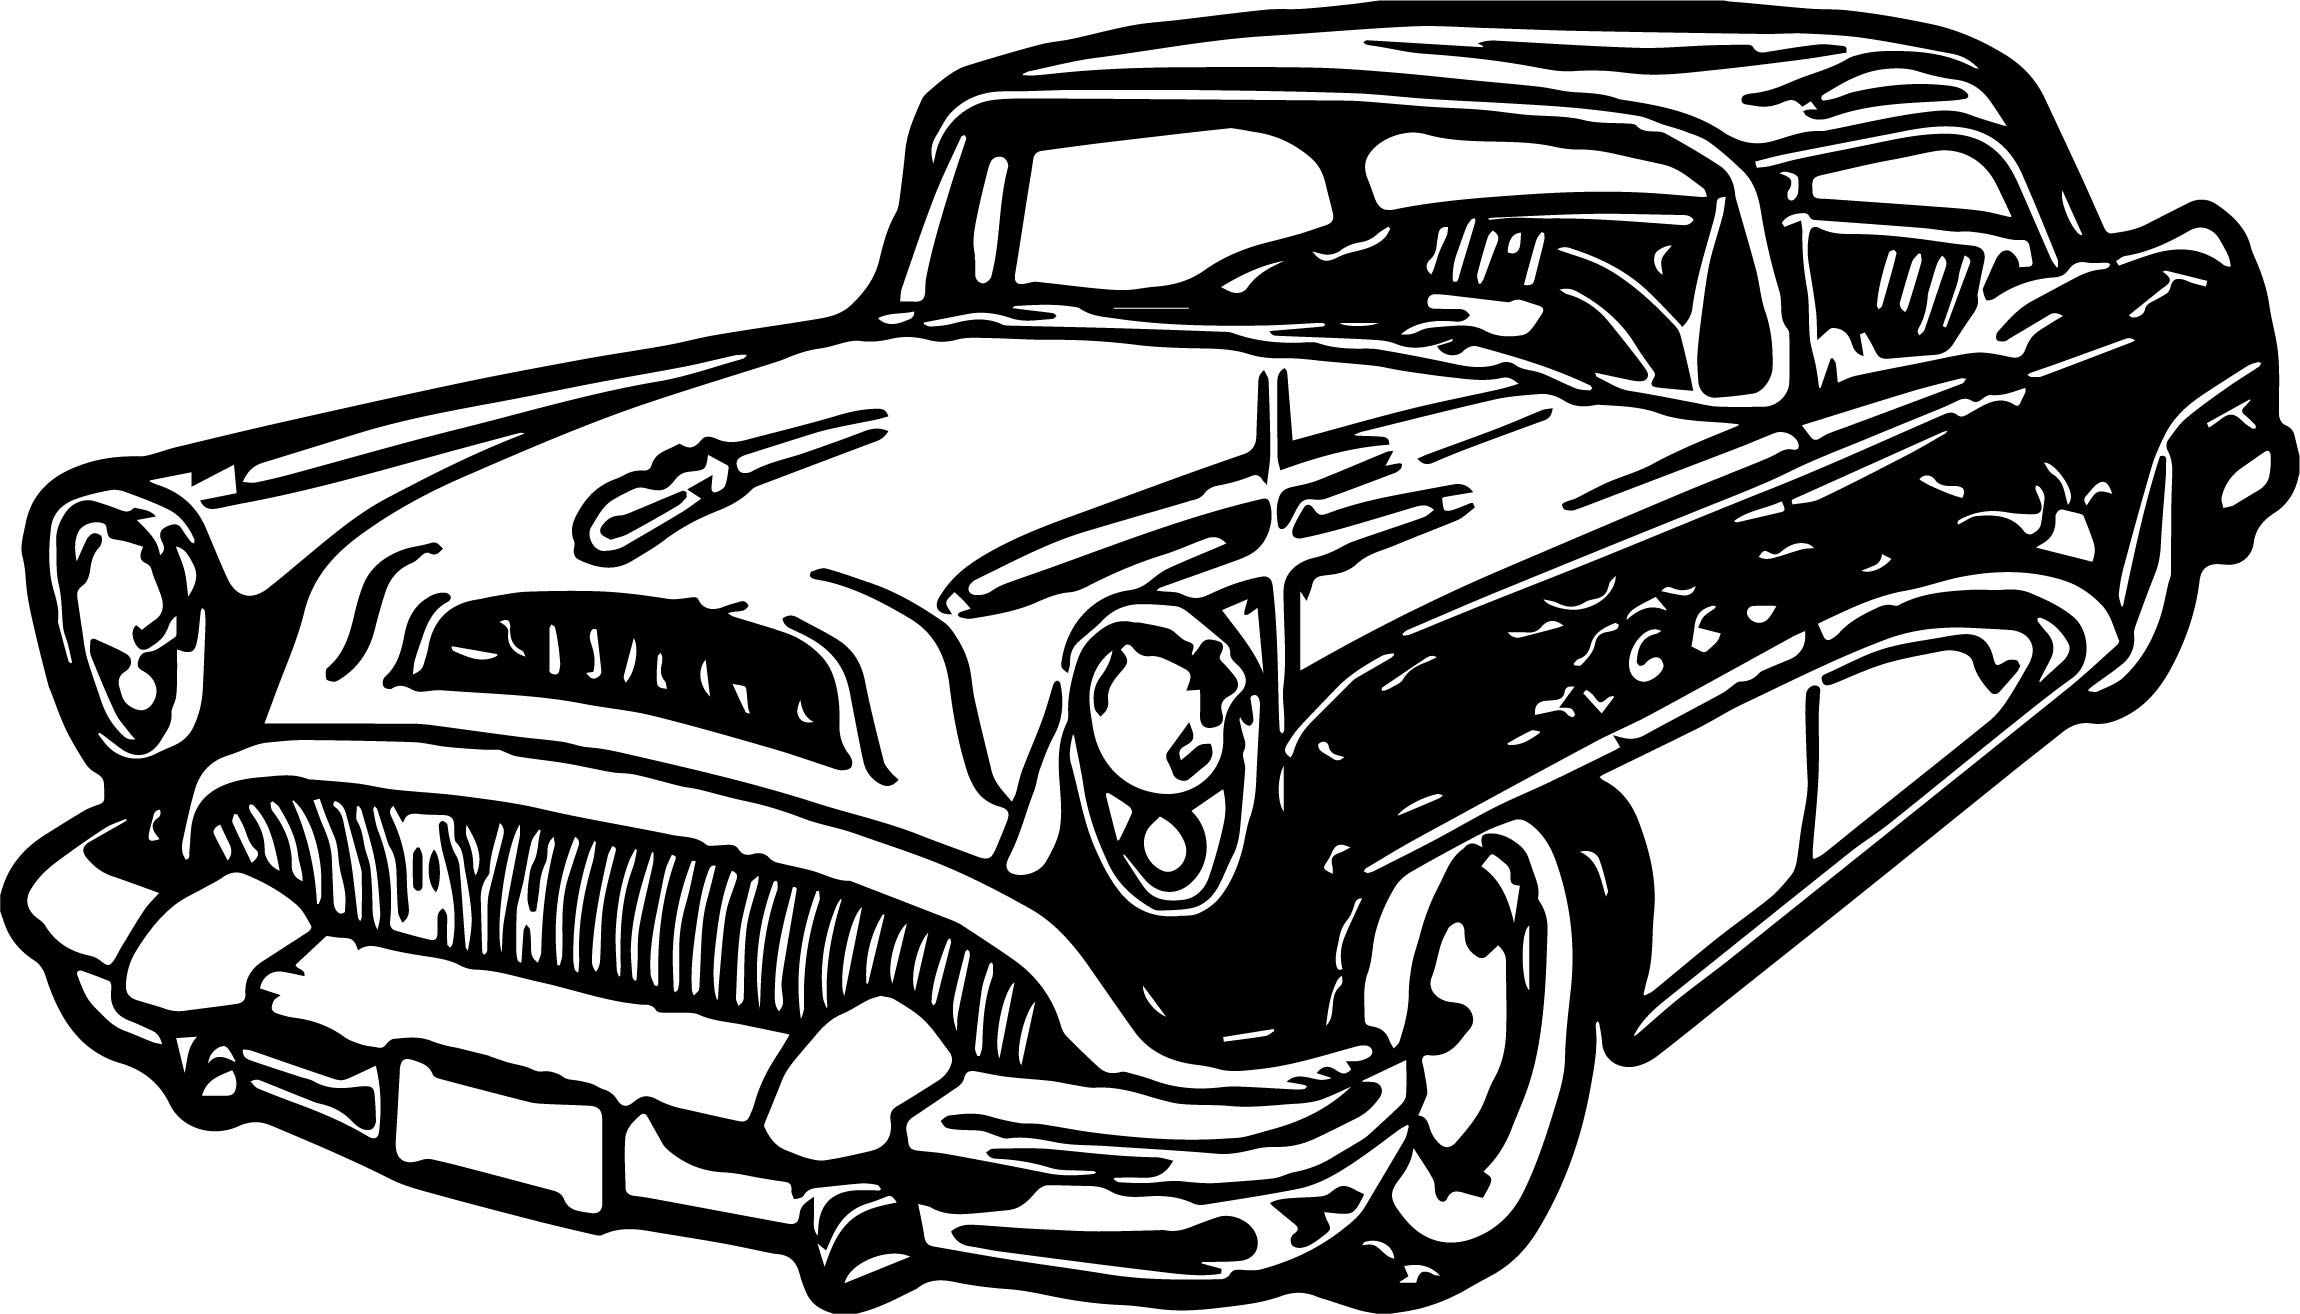 coloring pages of cool cars cool muscle cartoon cars download hot rod coloring pages pages coloring of cool cars